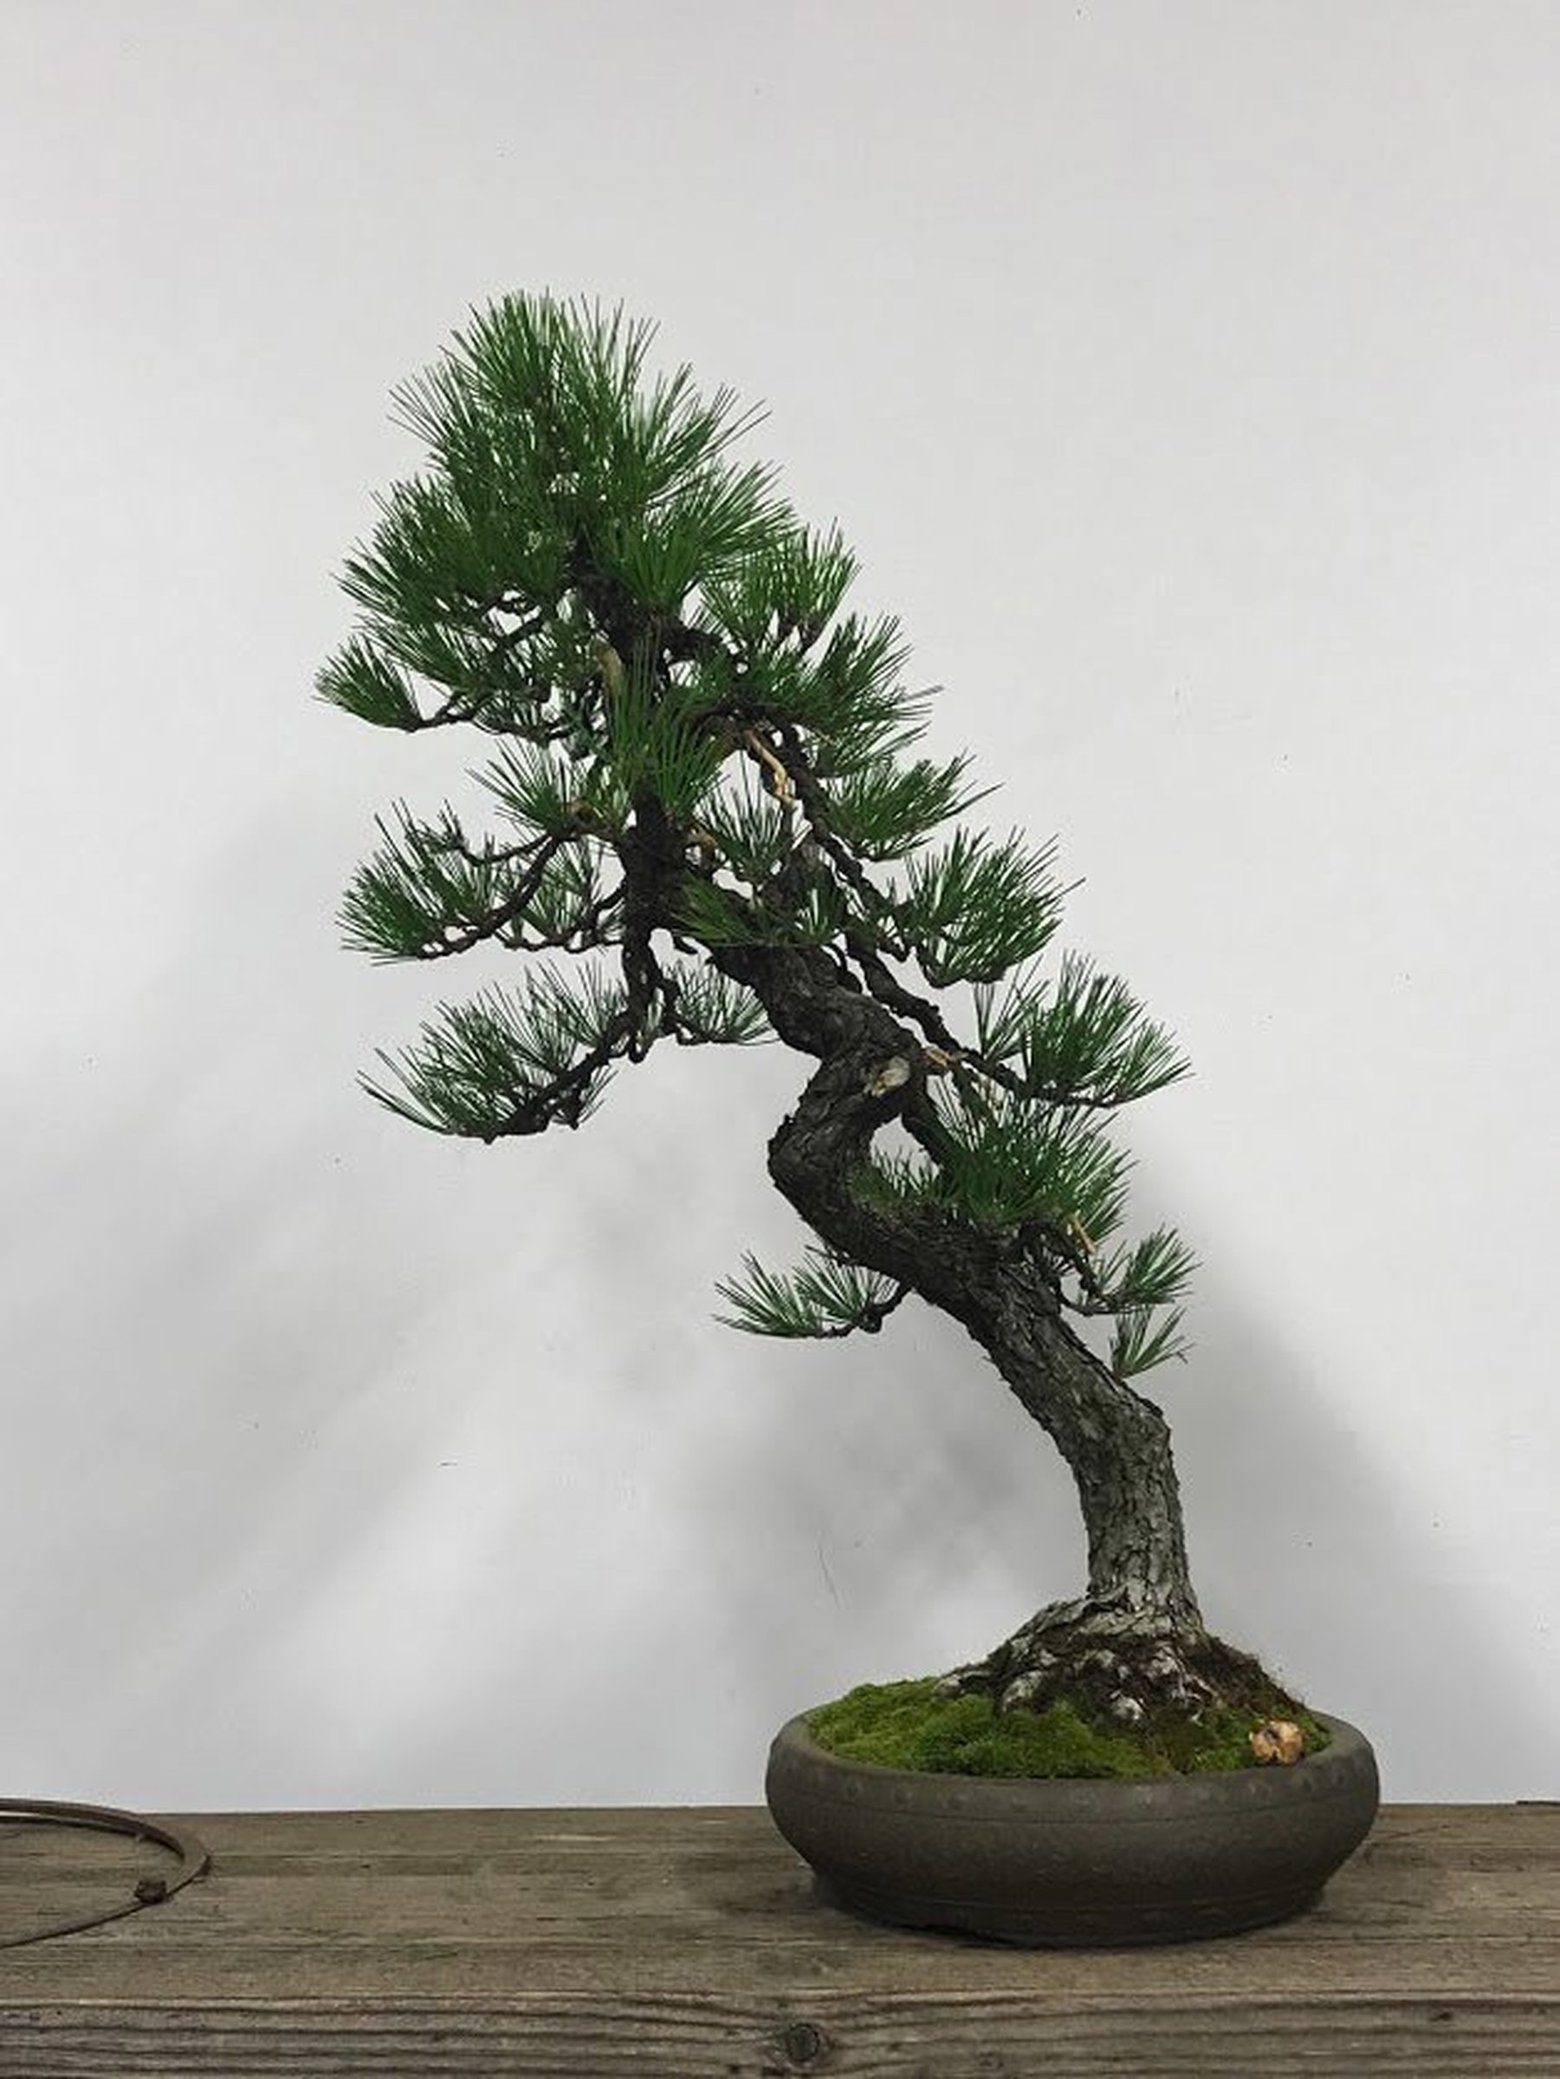 Pair Of Valuable Bonsai Trees Missing From Federal Way Museum The Seattle Times